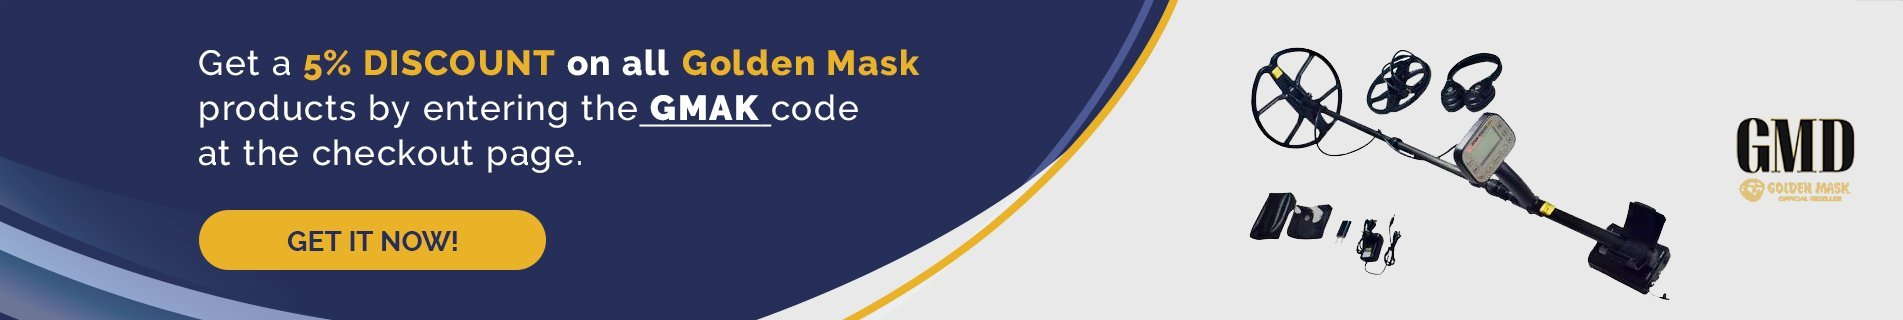 Golden Mask Metal Detectors | Free US Shipping | Secure Payment